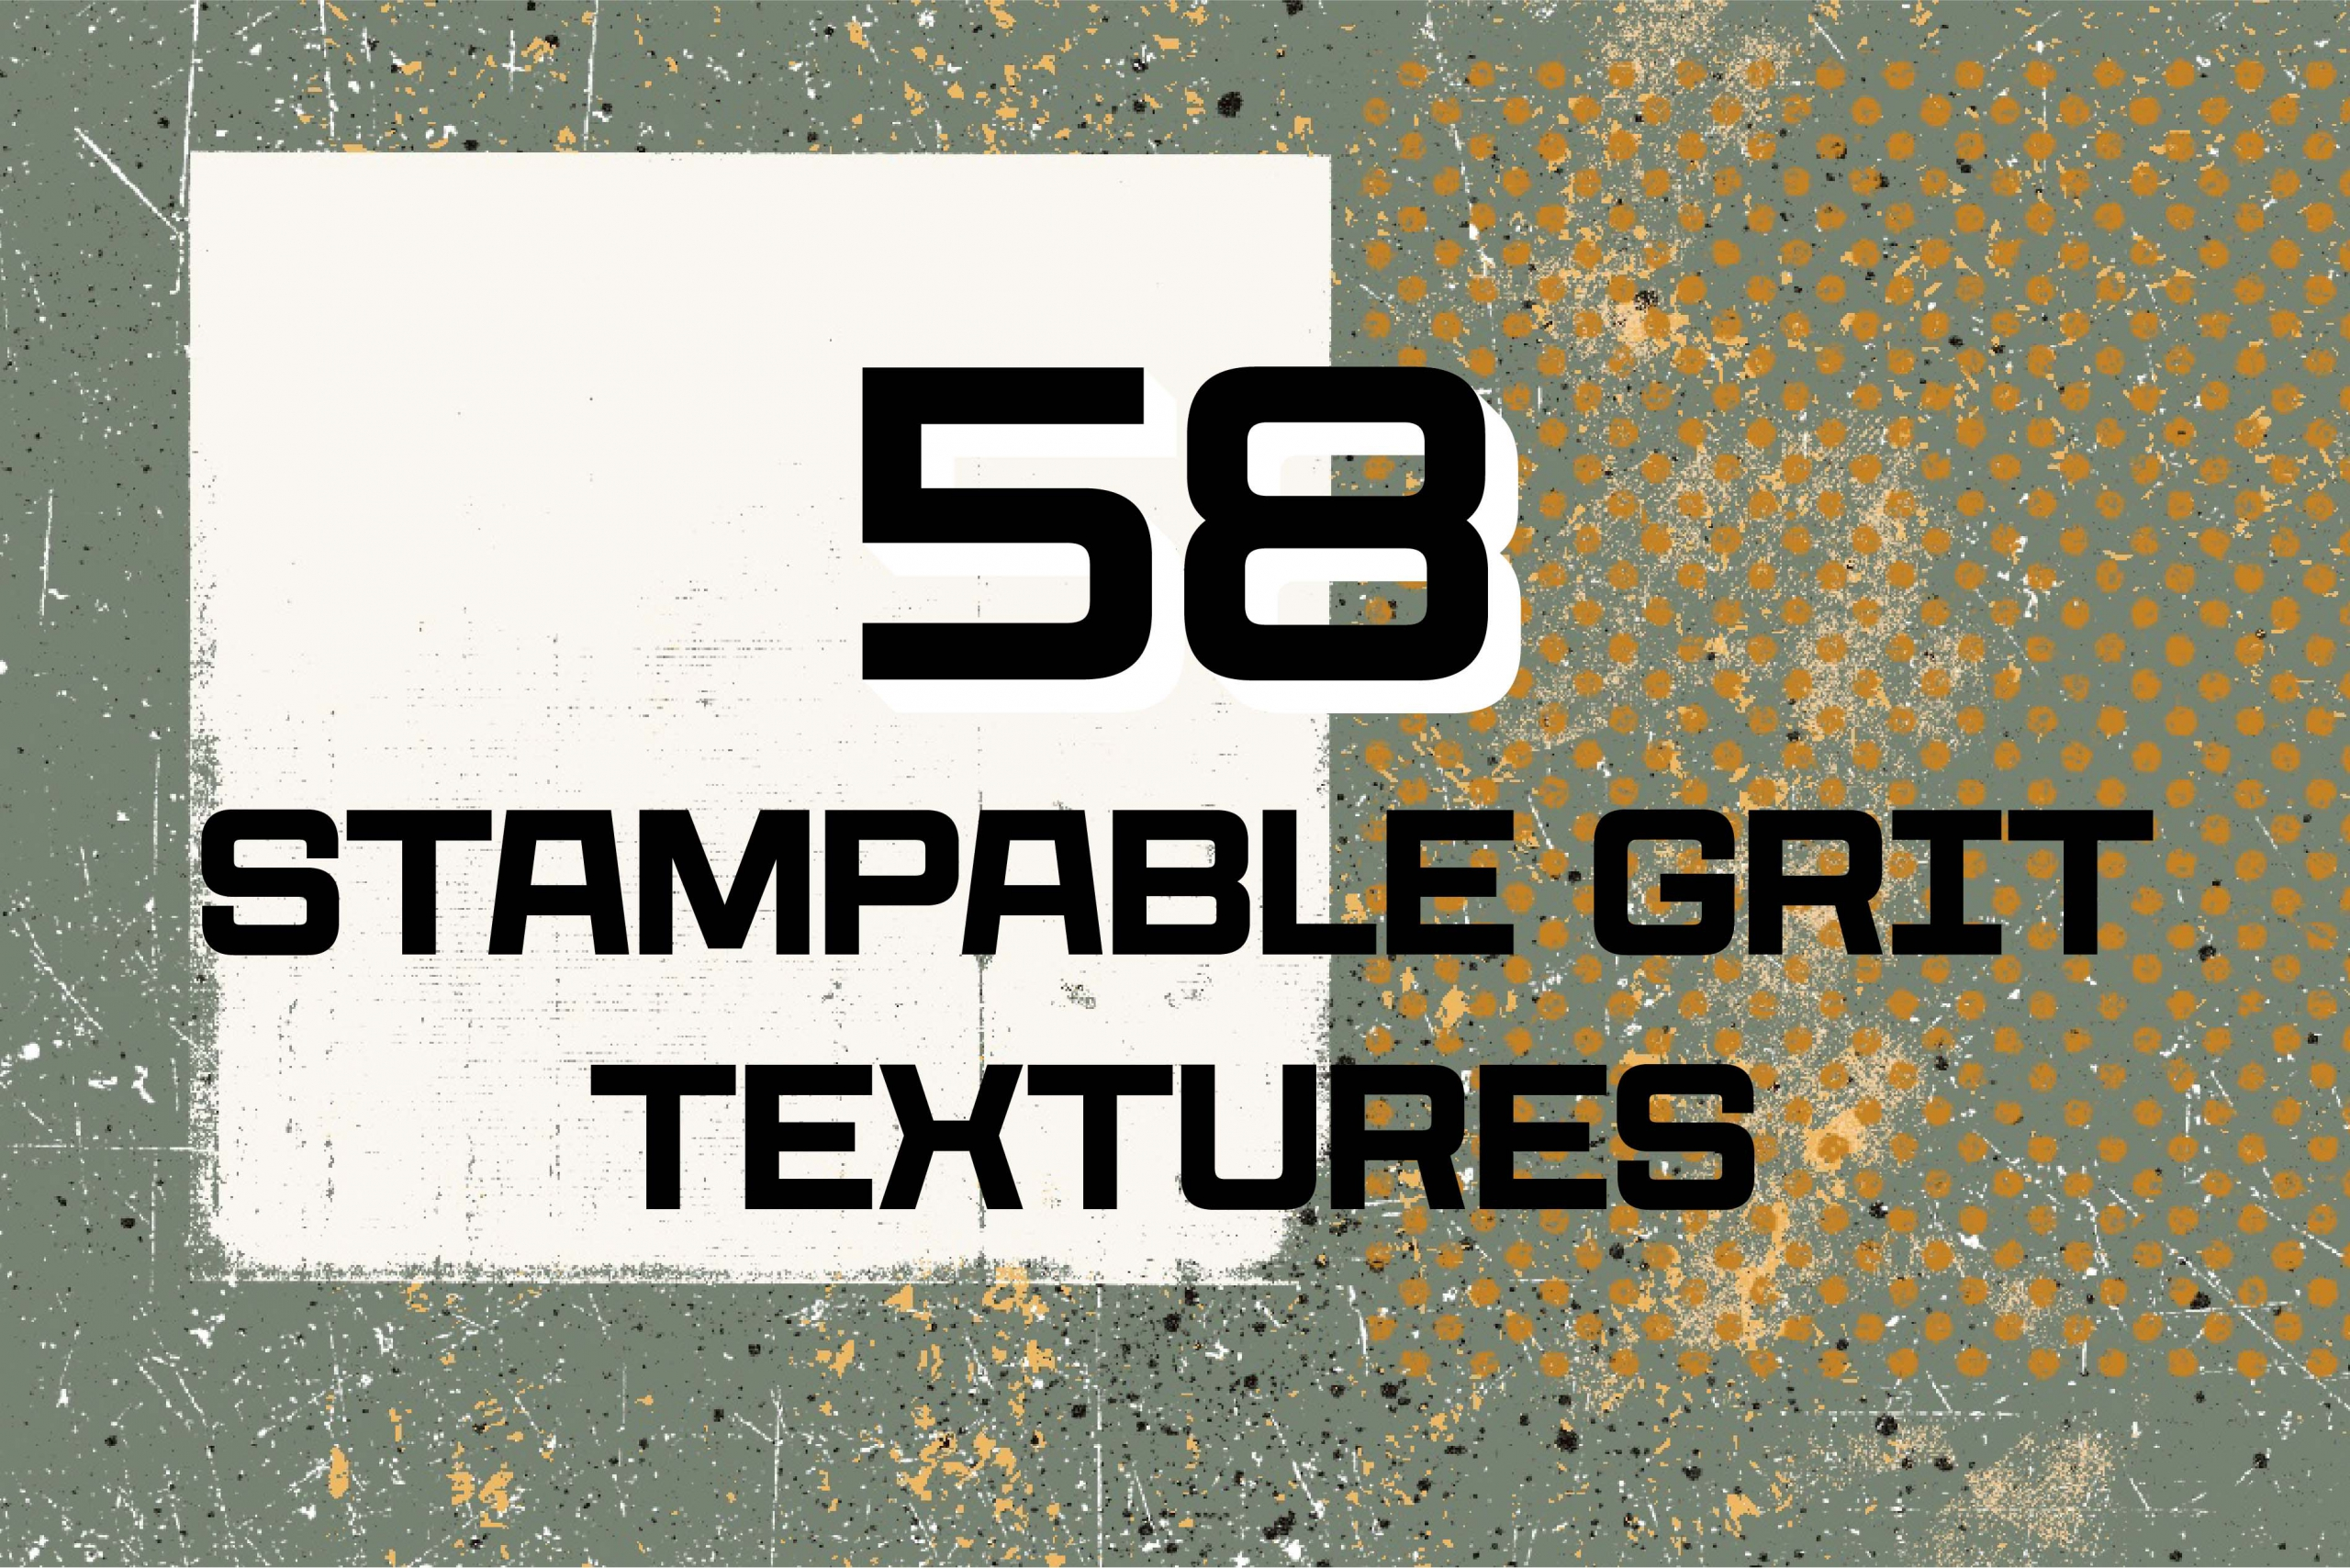 116 Stampable Procreate Texture Brushes